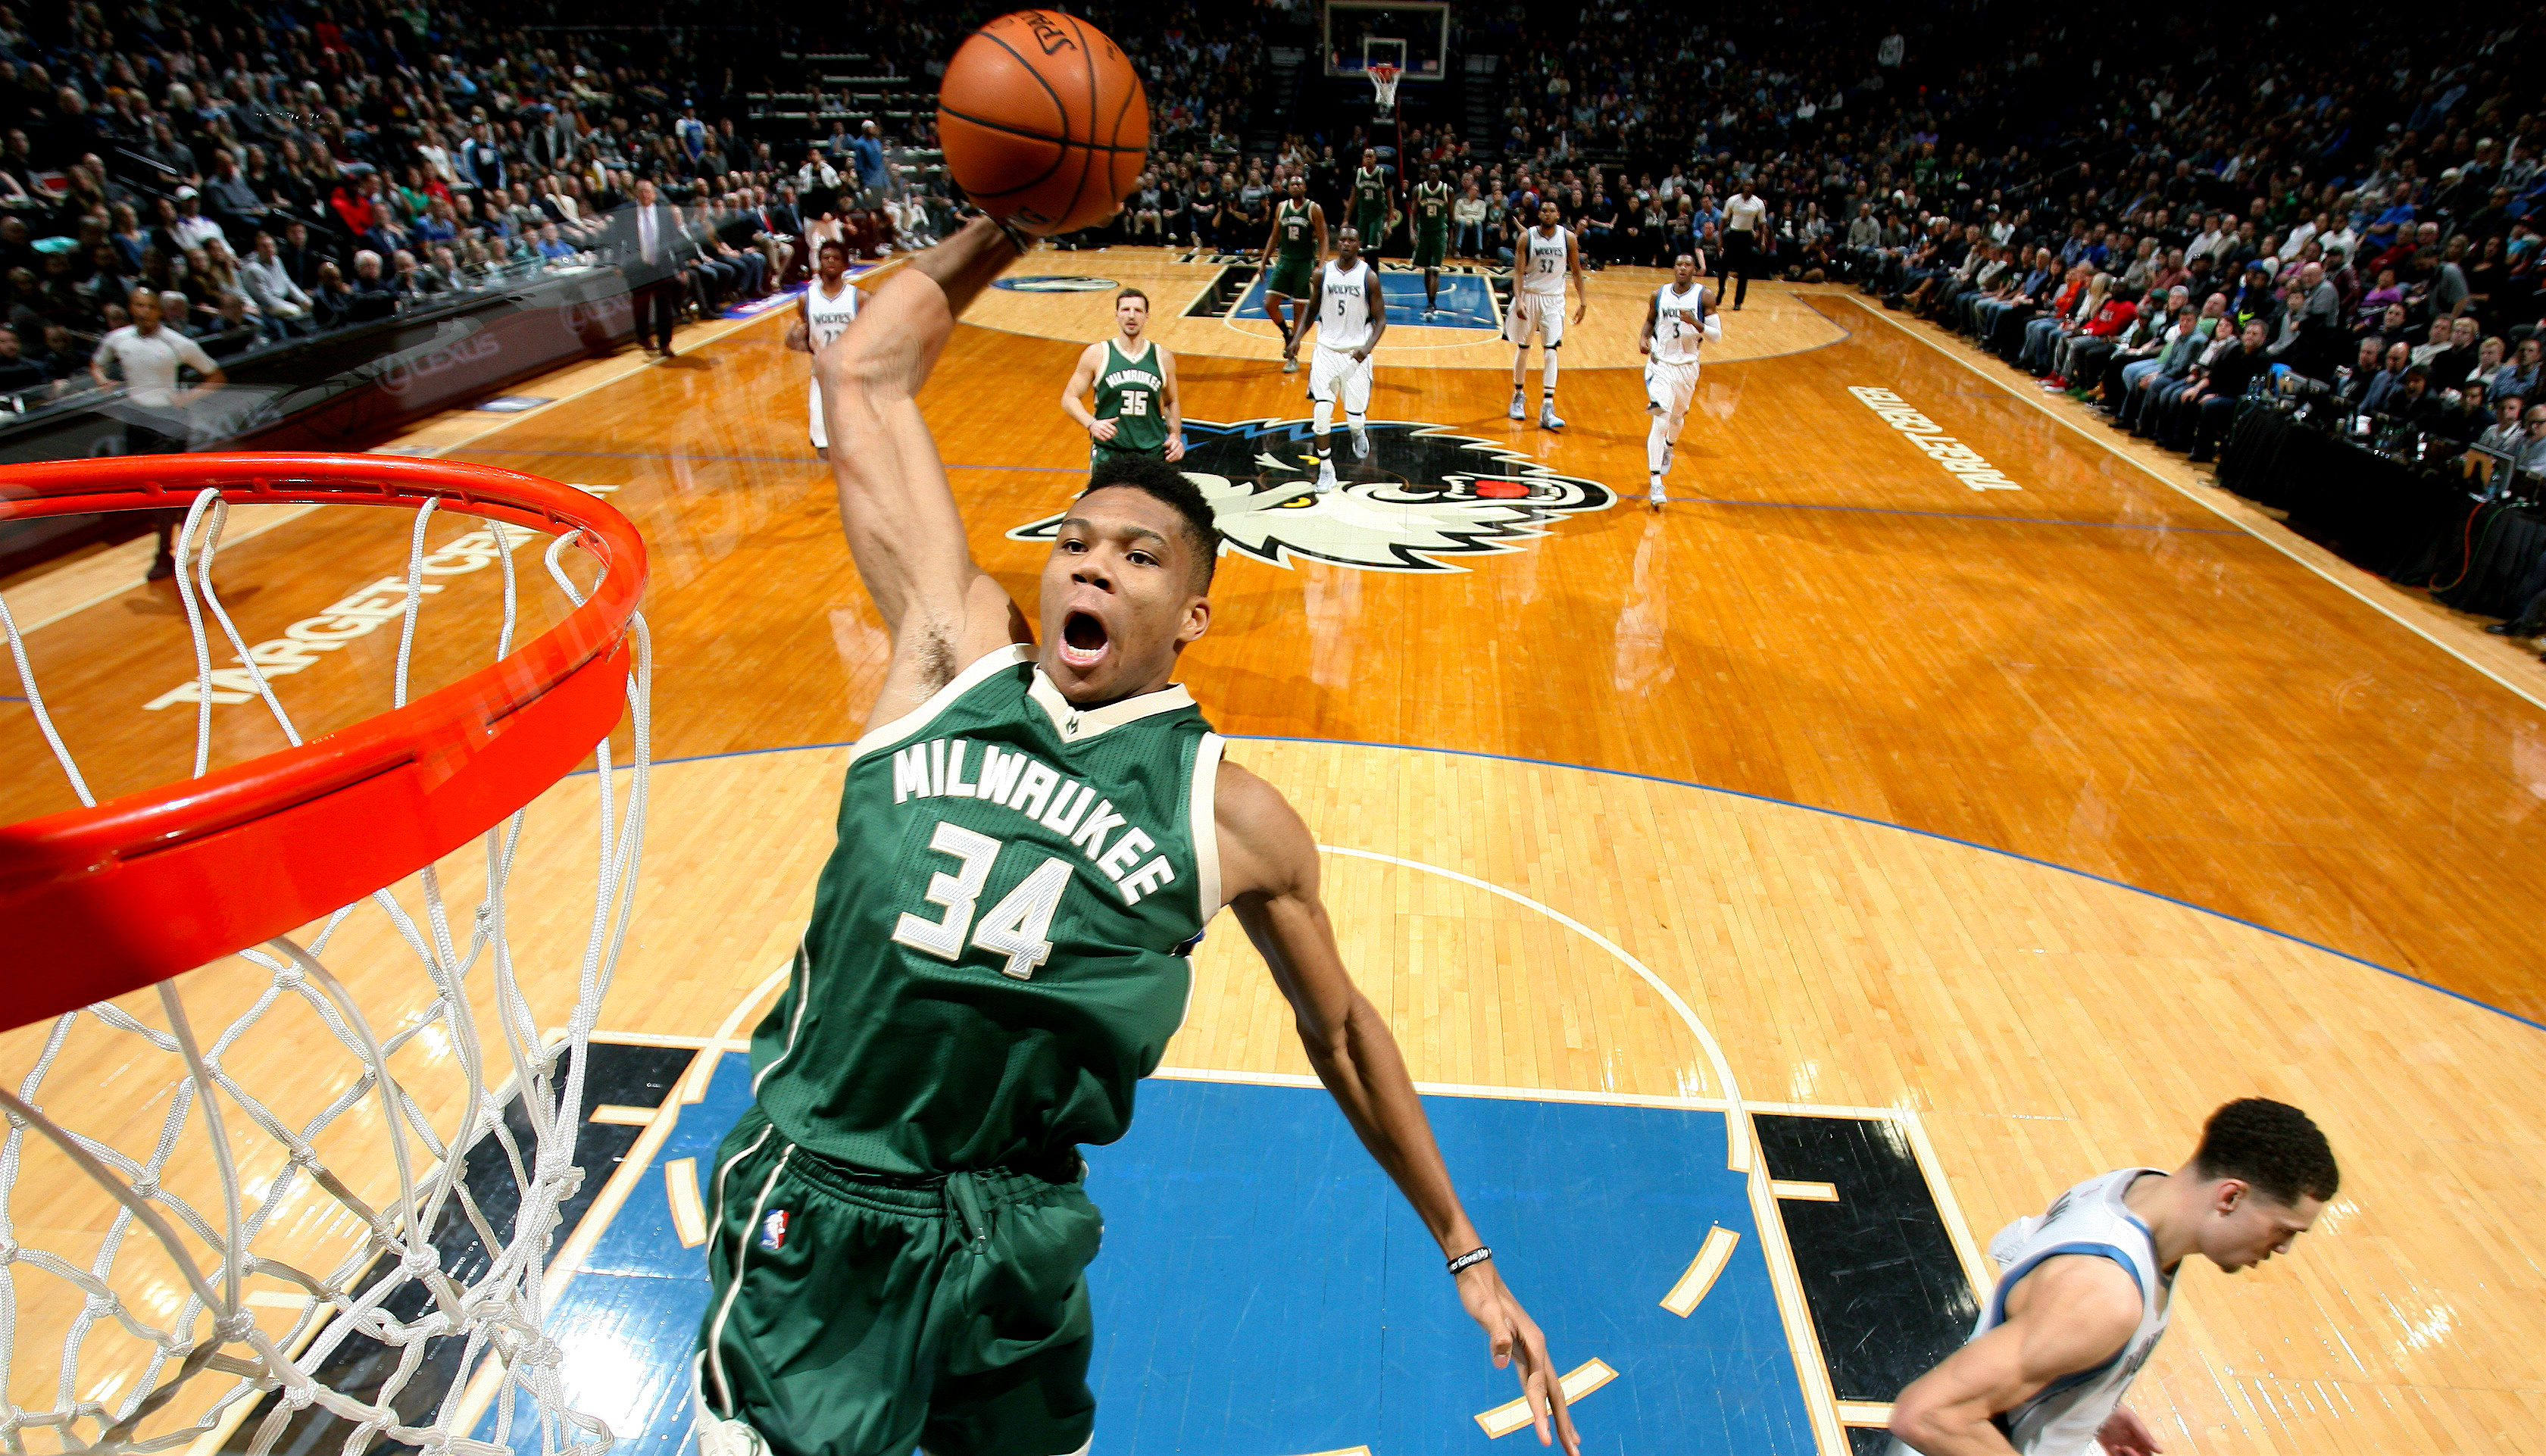 MINNEAPOLIS, MN - DECEMBER 30: Giannis Antetokounmpo #34 of the Milwaukee Bucks goes for the dunk during the game against the Minnesota Timberwolves on December 30, 2016 at Target Center in Minneapolis, Minnesota. NOTE TO USER: User expressly acknowledges and agrees that, by downloading and or using this Photograph, user is consenting to the terms and conditions of the Getty Images License Agreement. Mandatory Copyright Notice: Copyright 2016 NBAE (Photo by David Sherman/NBAE via Getty Images)